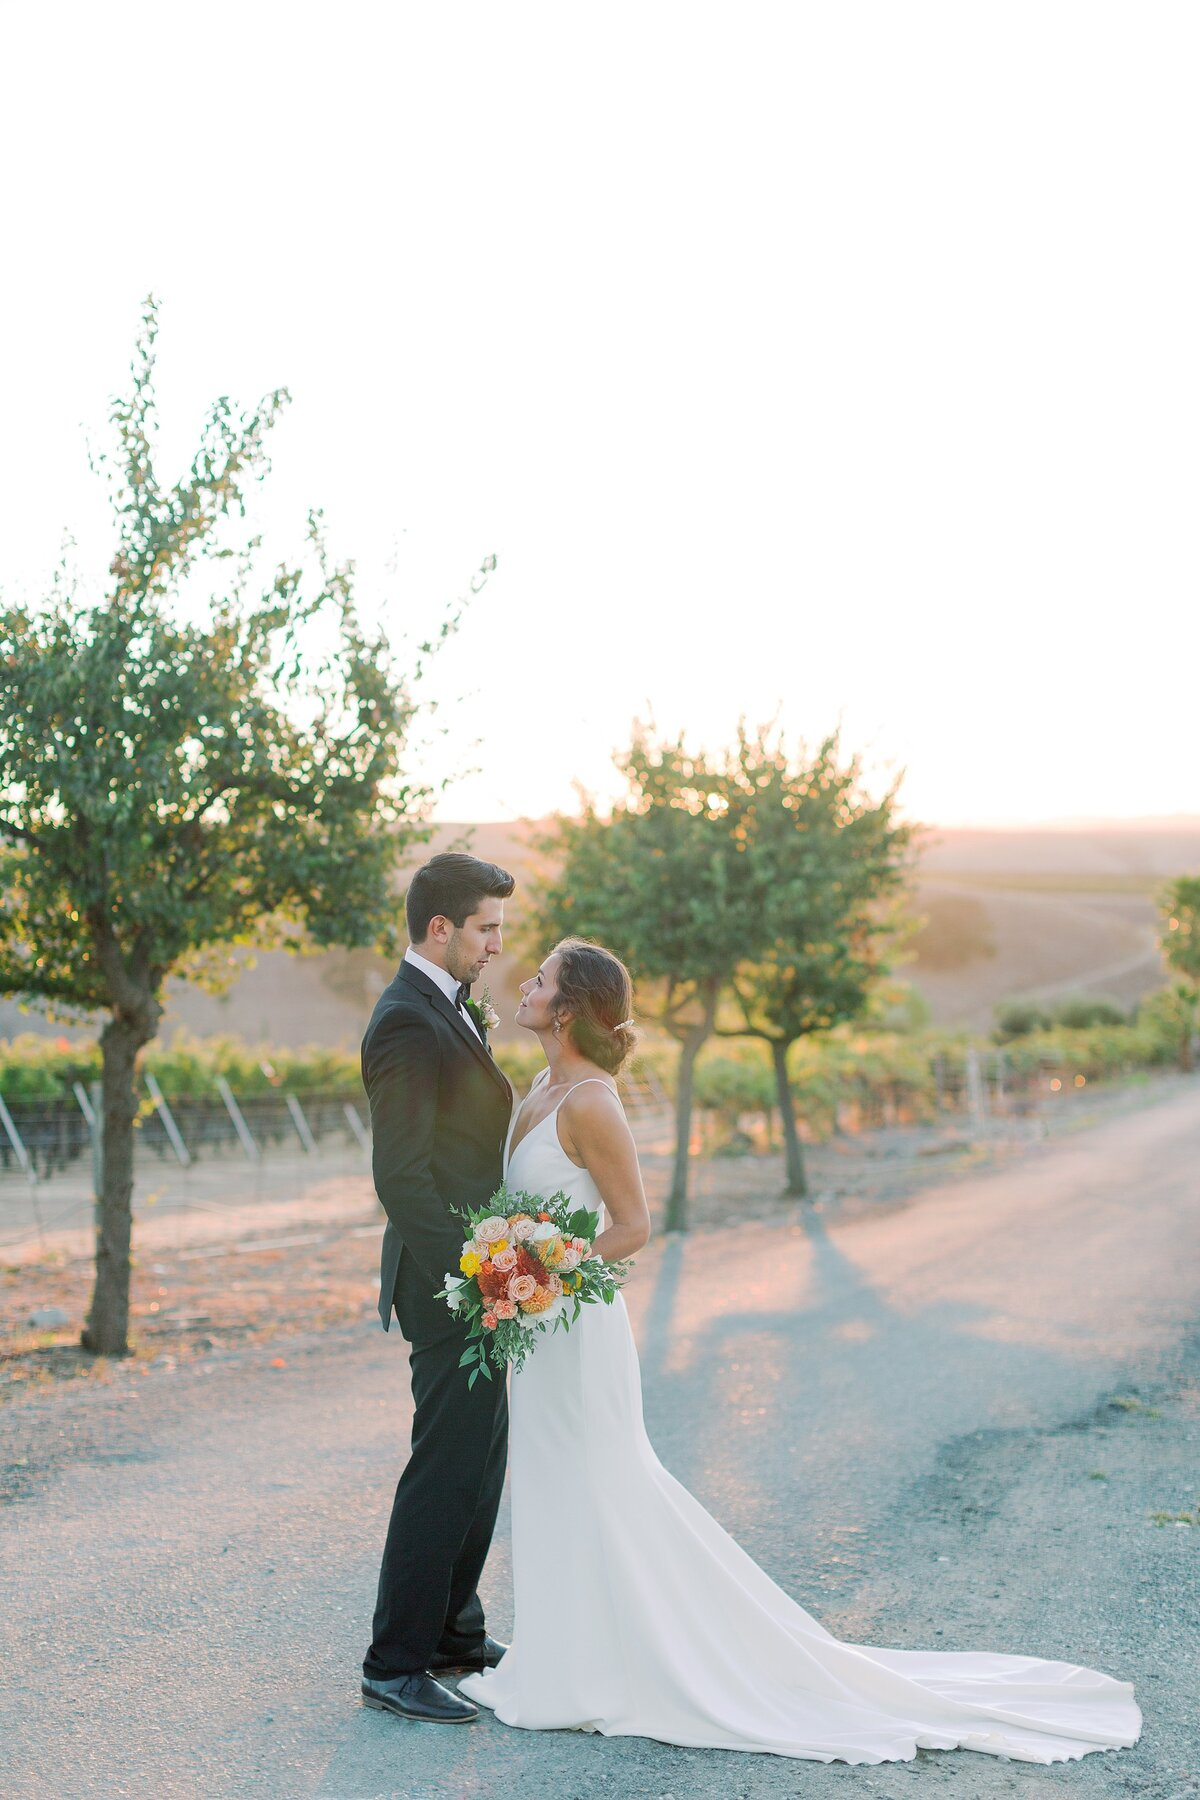 20191020 Modern Elegance Wedding Styled Shoot at Three Steves Winery Livermore_Bethany Picone Photography-196_WEB